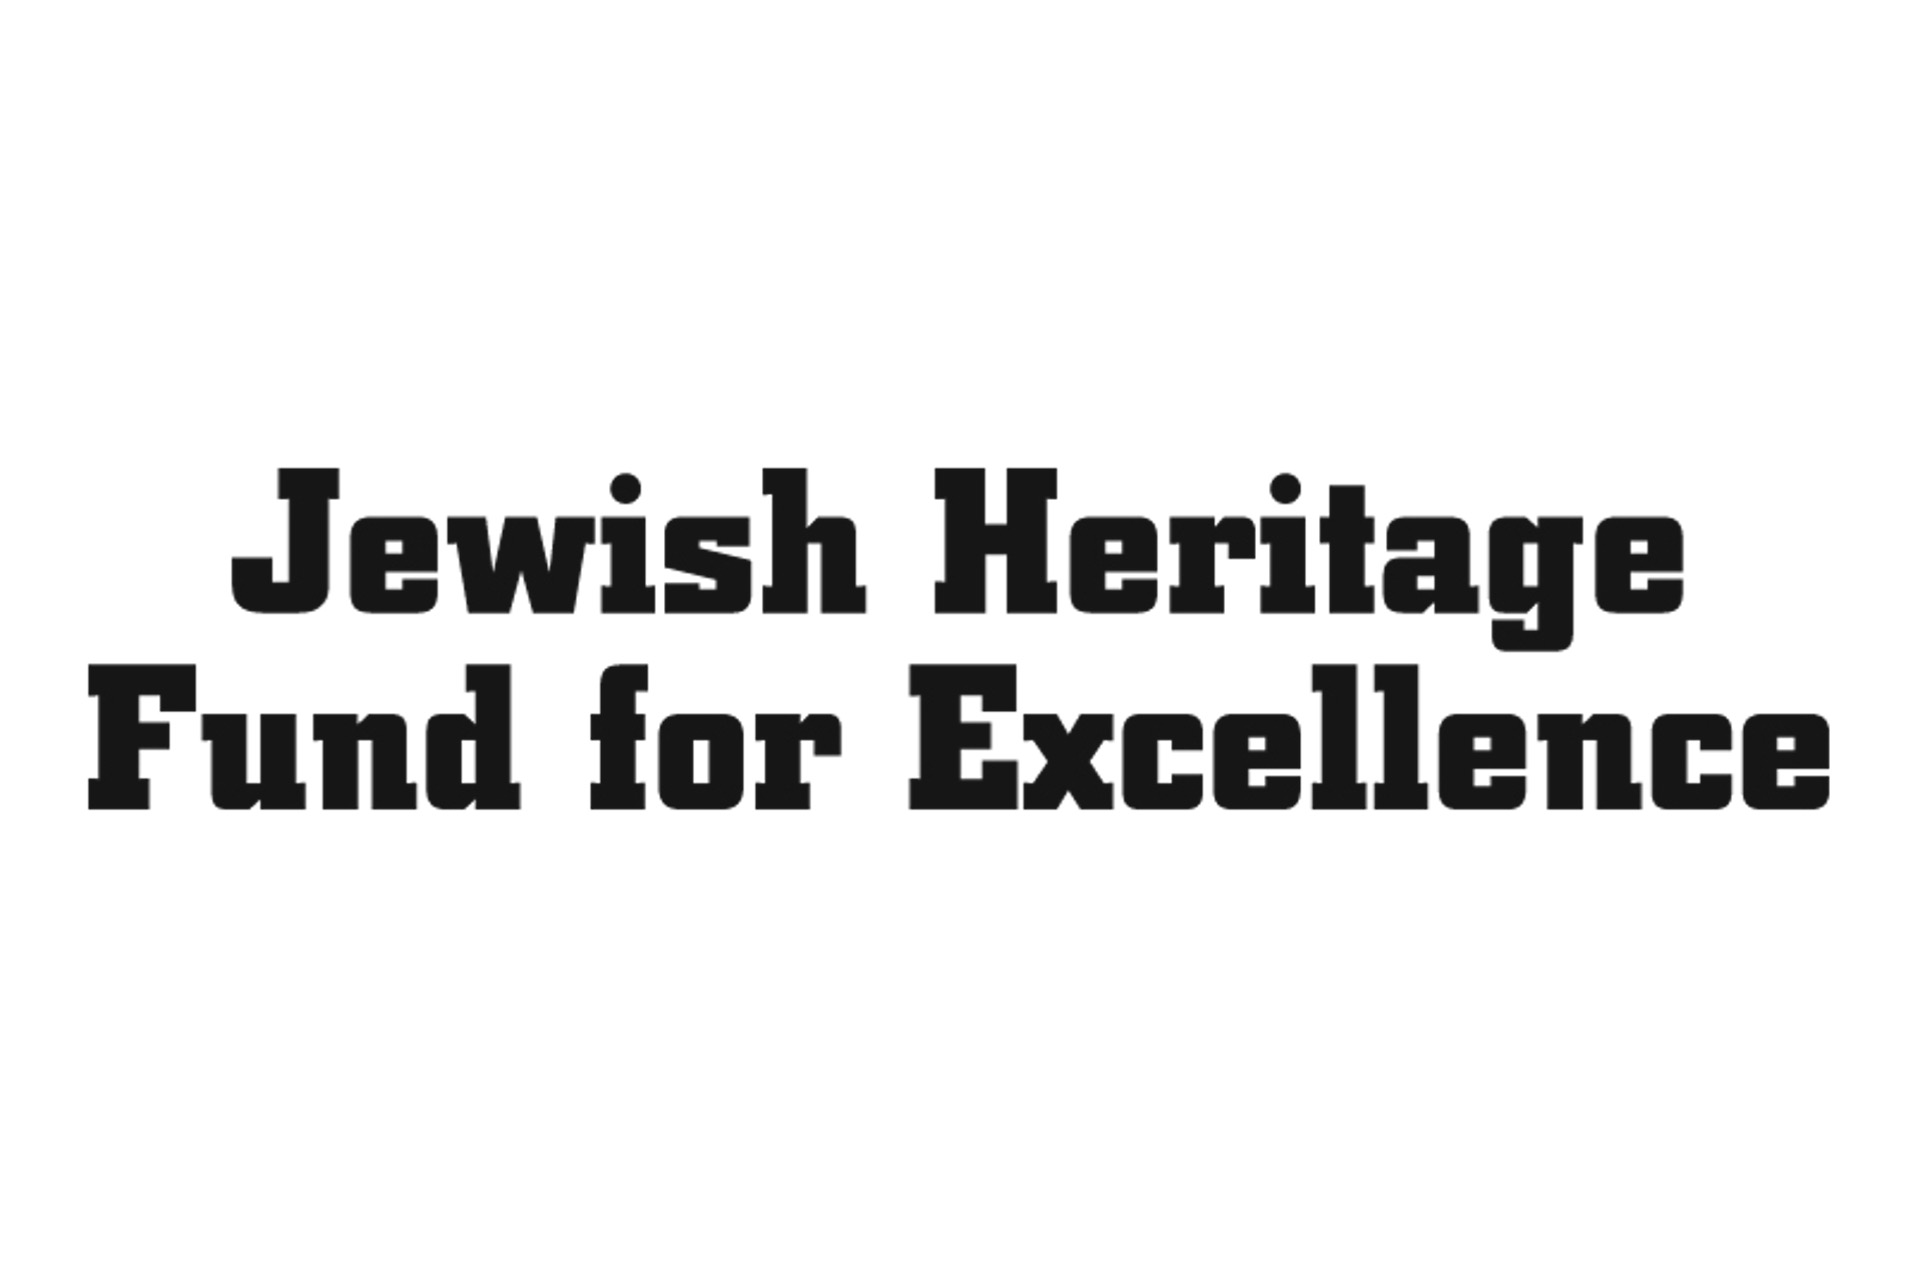 Jewish Heritage Fund for Excellence